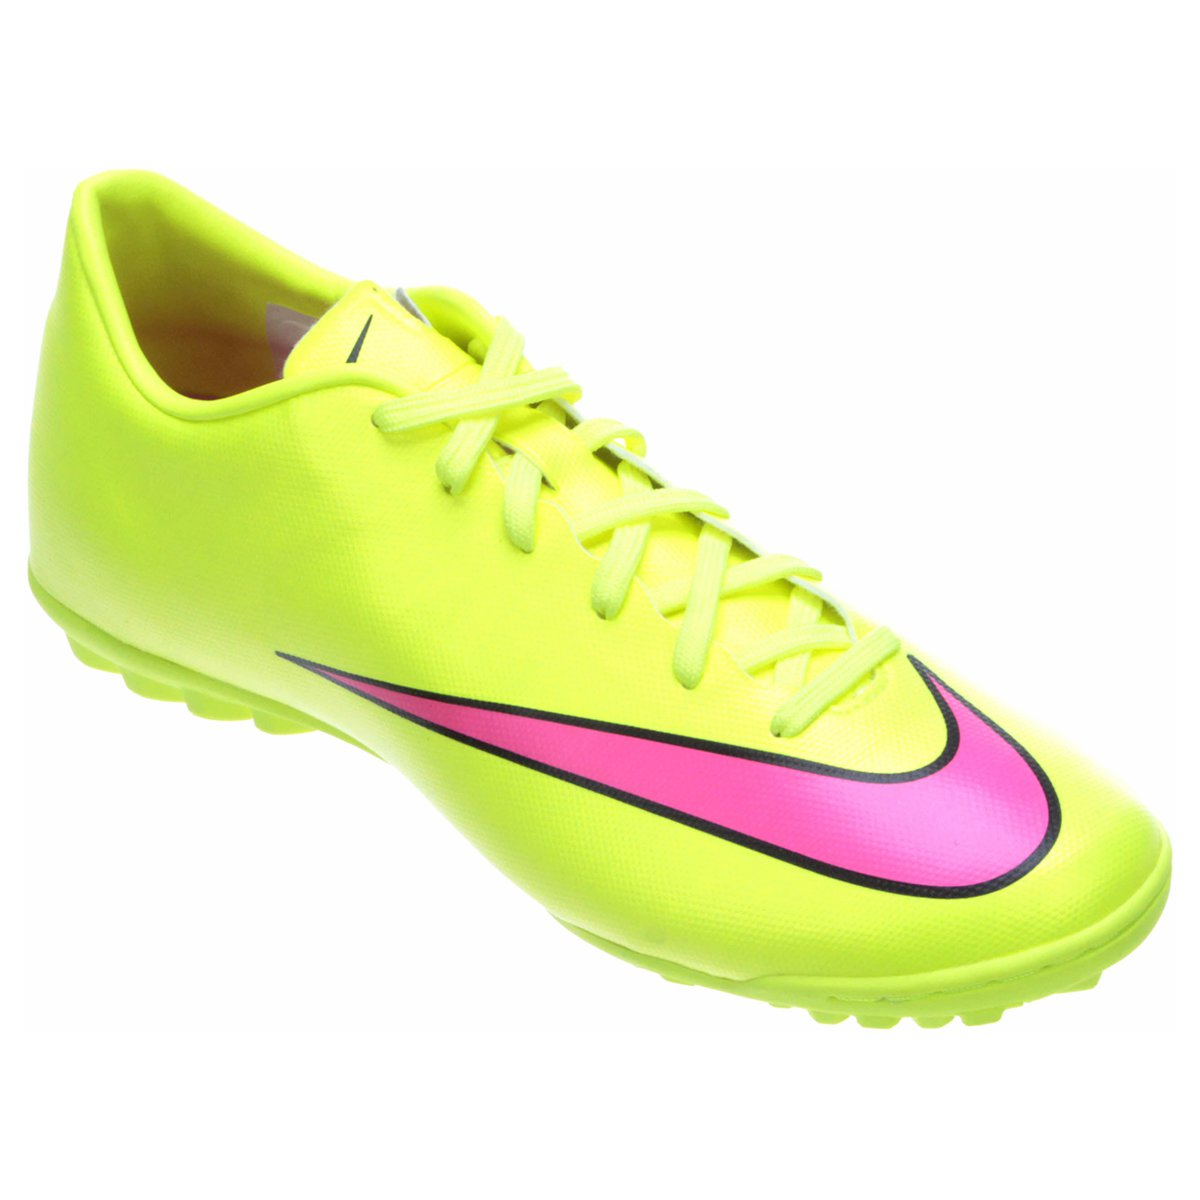 579bb88b20 ... iii ic adulto c5d2d 3d7a2 cheapest chuteira society nike mercurial  victory 5 tf masculina compre agora netshoes 53d9f e0f4c ...